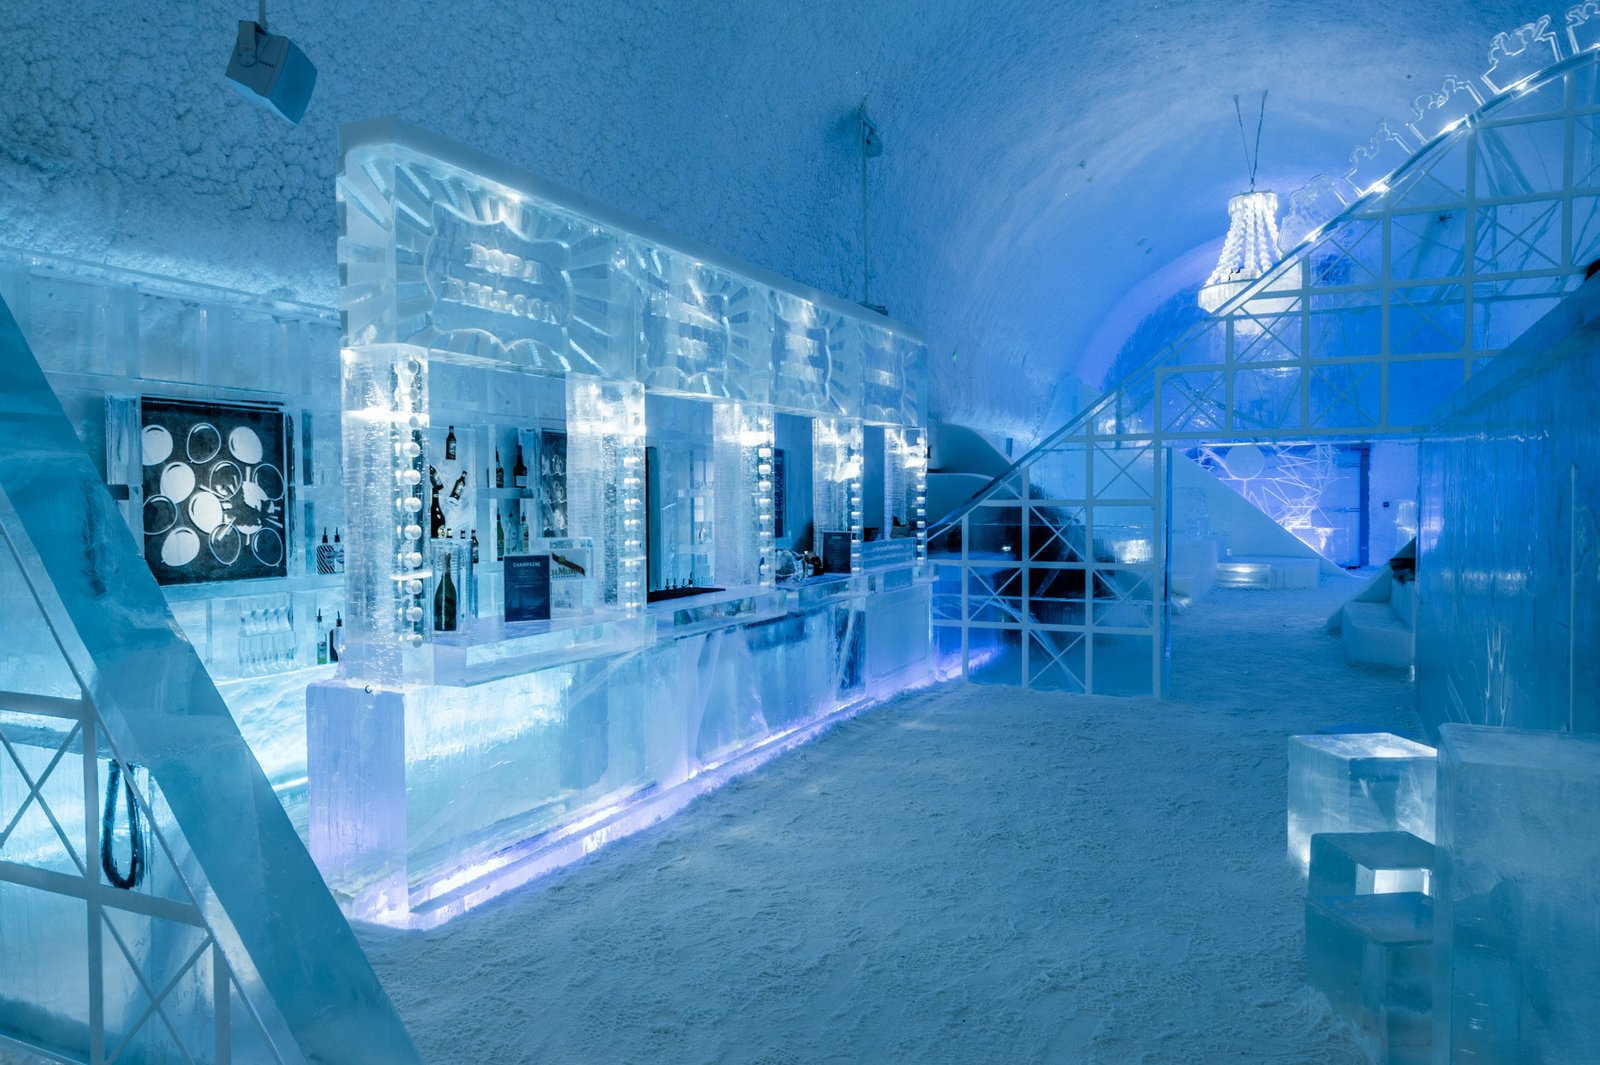 ❄️Check Out This Chilling Design at Sweden's Icehotel! icehotel ❄️Check Out This Chilling Design at Sweden's Icehotel! 13